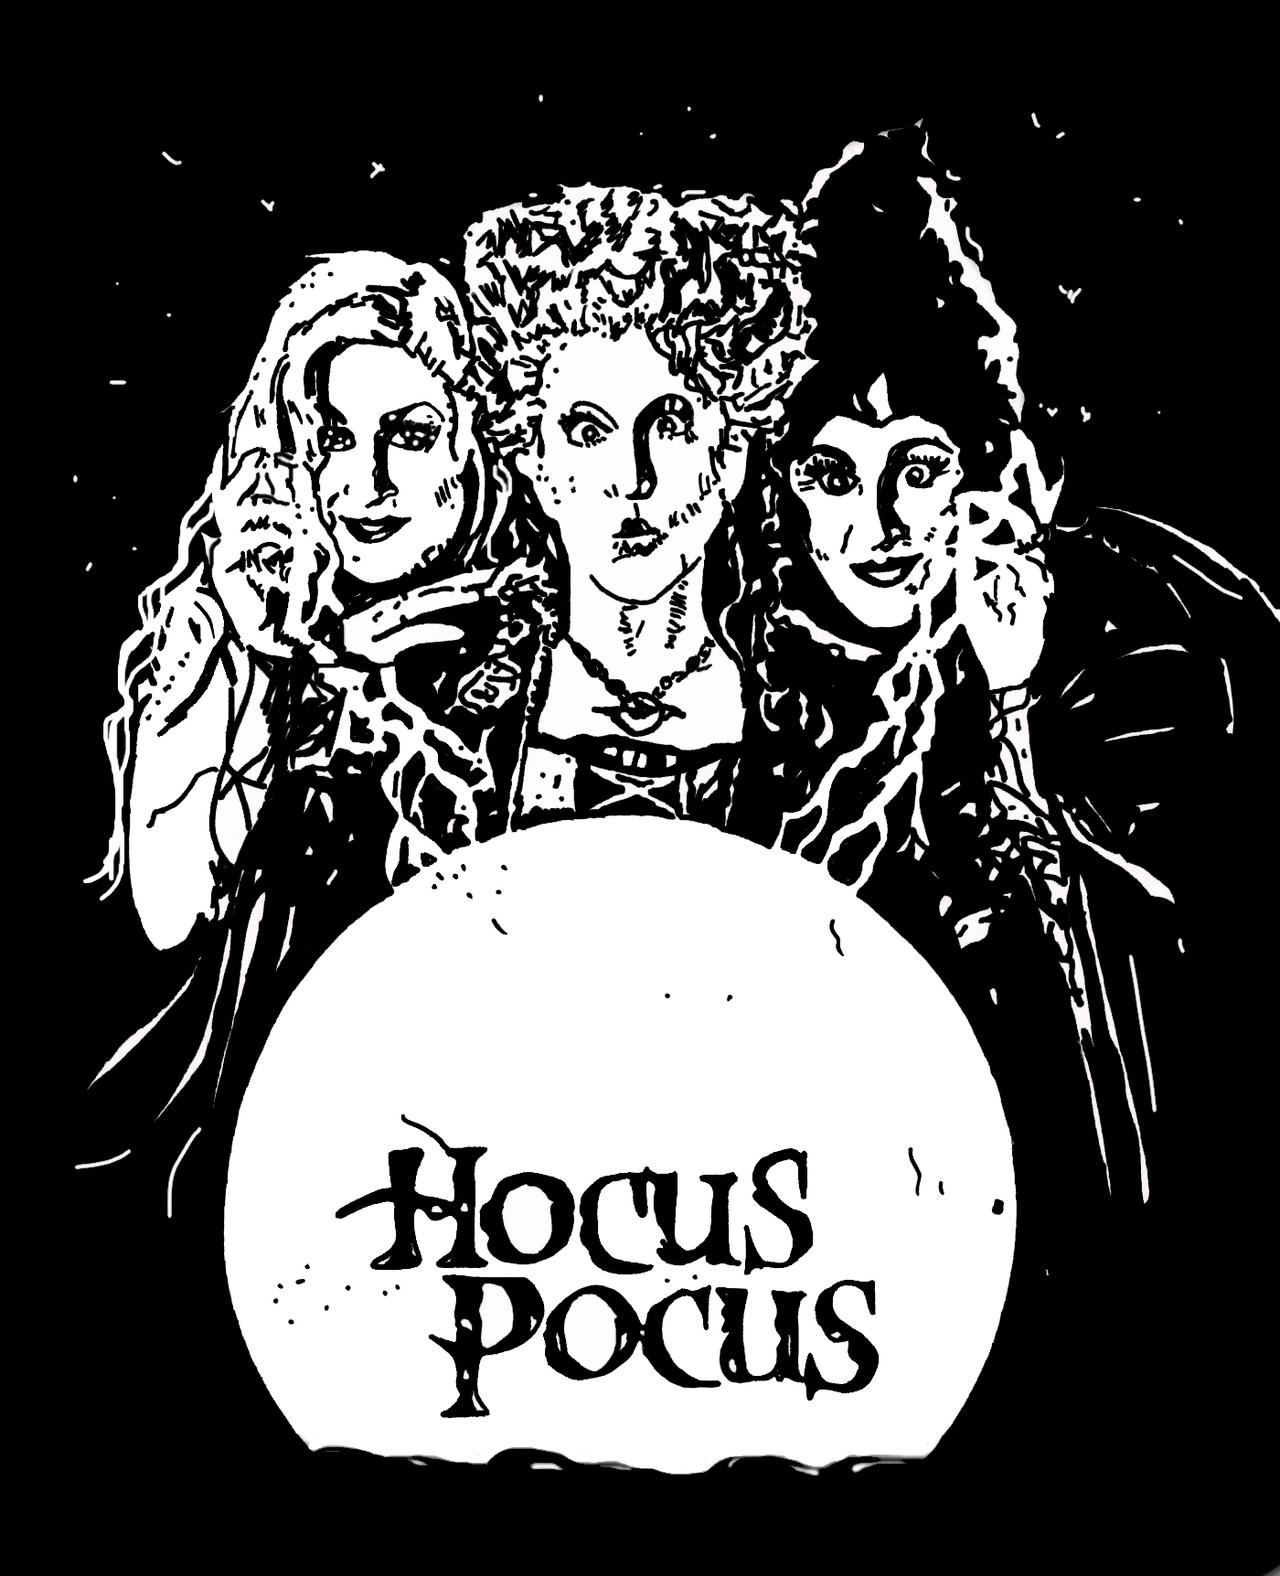 get free high quality hd wallpapers hocus pocus coloring pages hocus pocus coloring pages